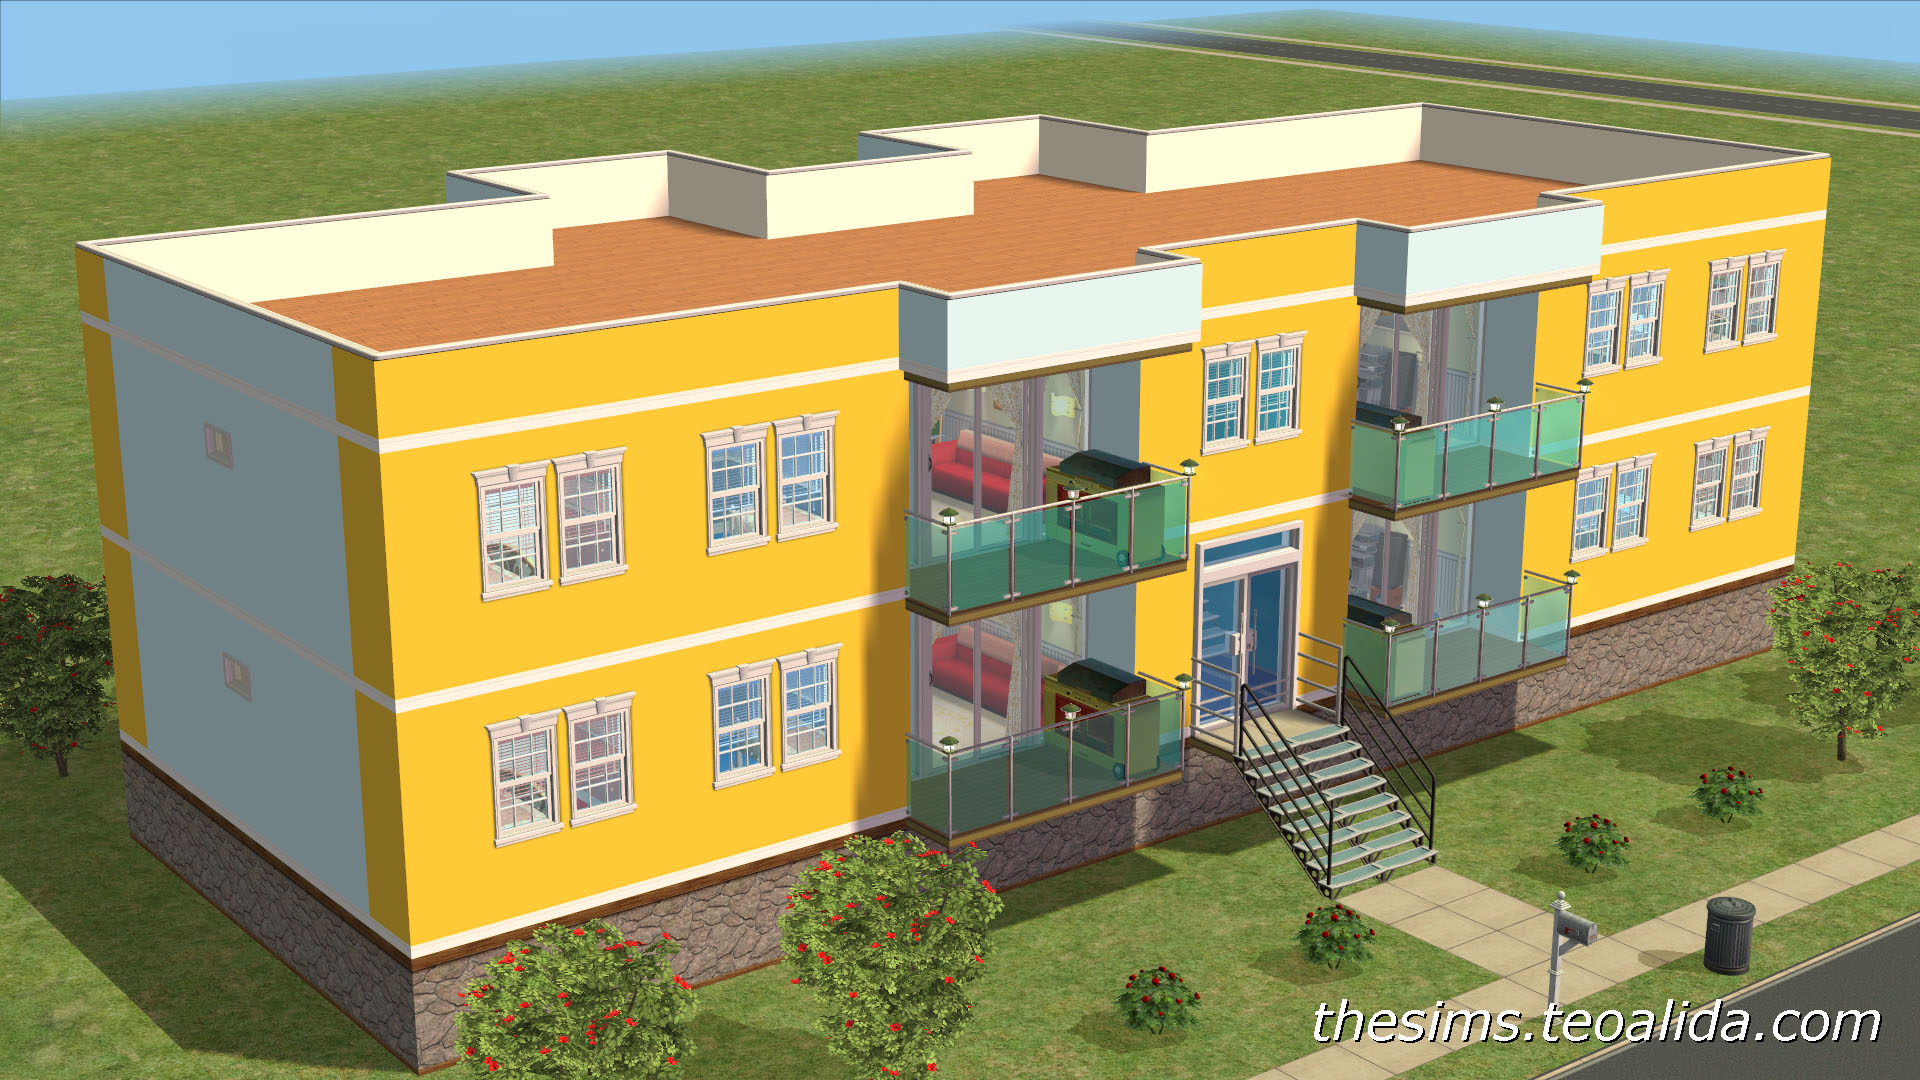 Apartment Sizes 107 Squares Plus 8 Of Balcony Rental Fees 2 230 344 Expansion Needed Life Only